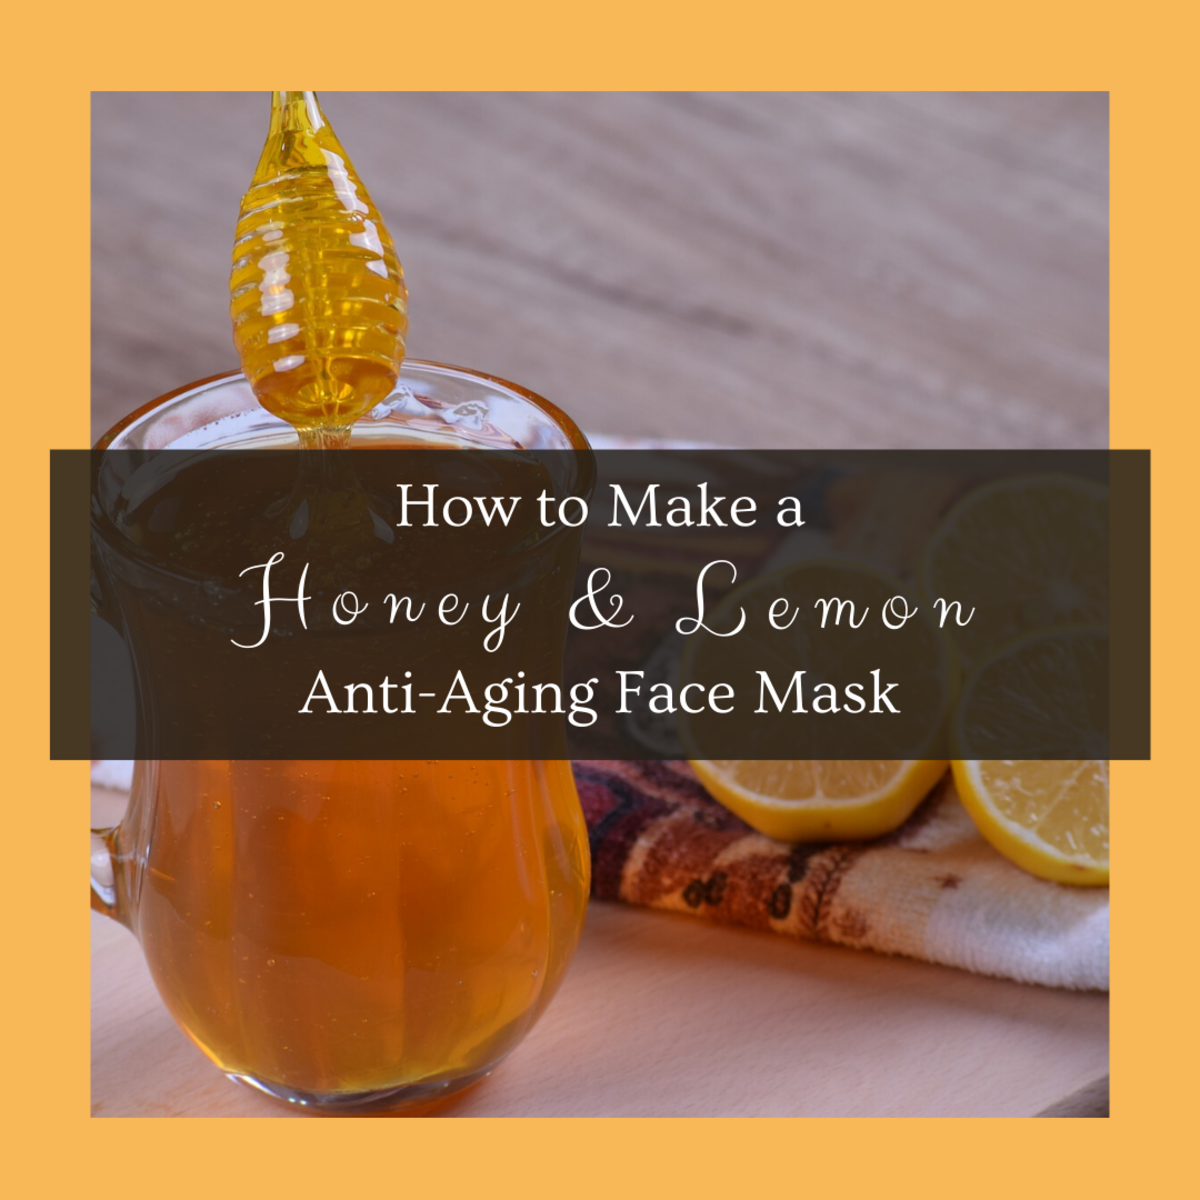 How to Make an Anti-Aging Honey and Lemon Face Mask